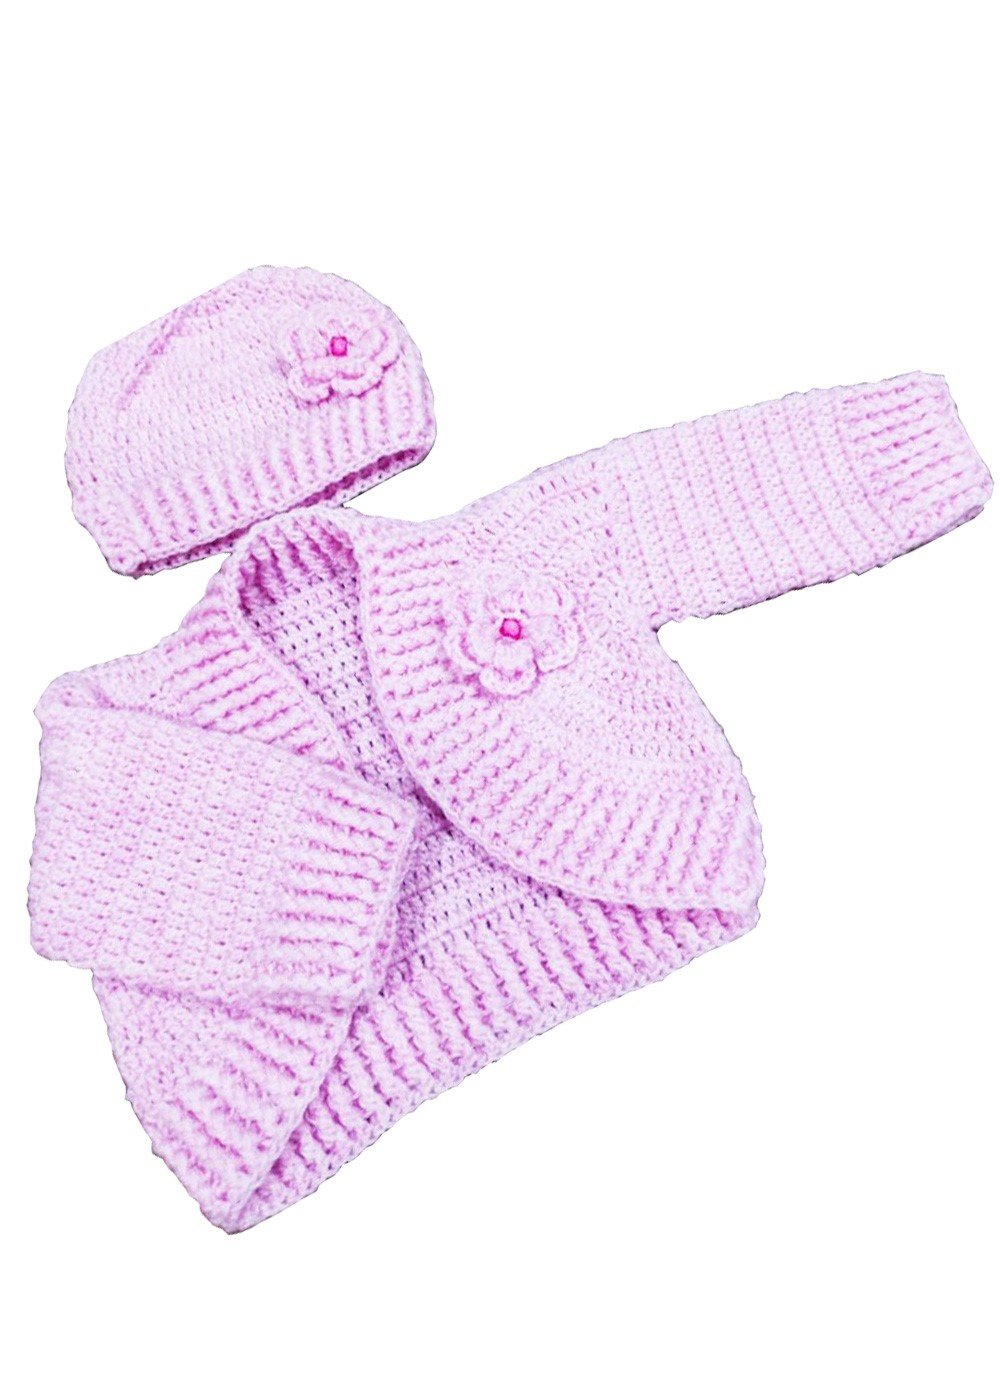 Hand Crocheted Baby Girls' Cardigan Pink